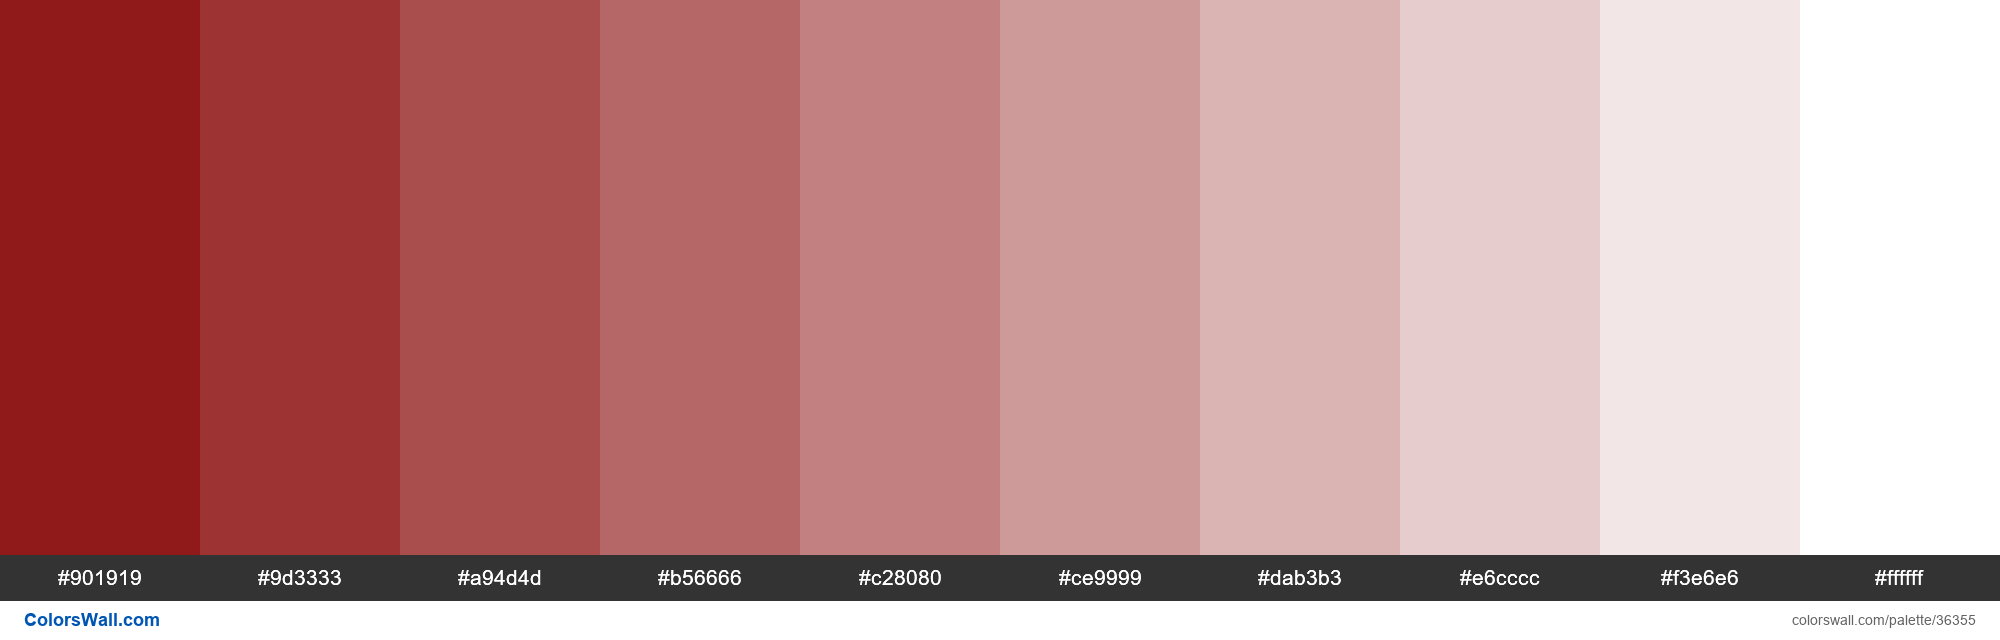 Tints XKCD Color dark red #840000 hex - #36355